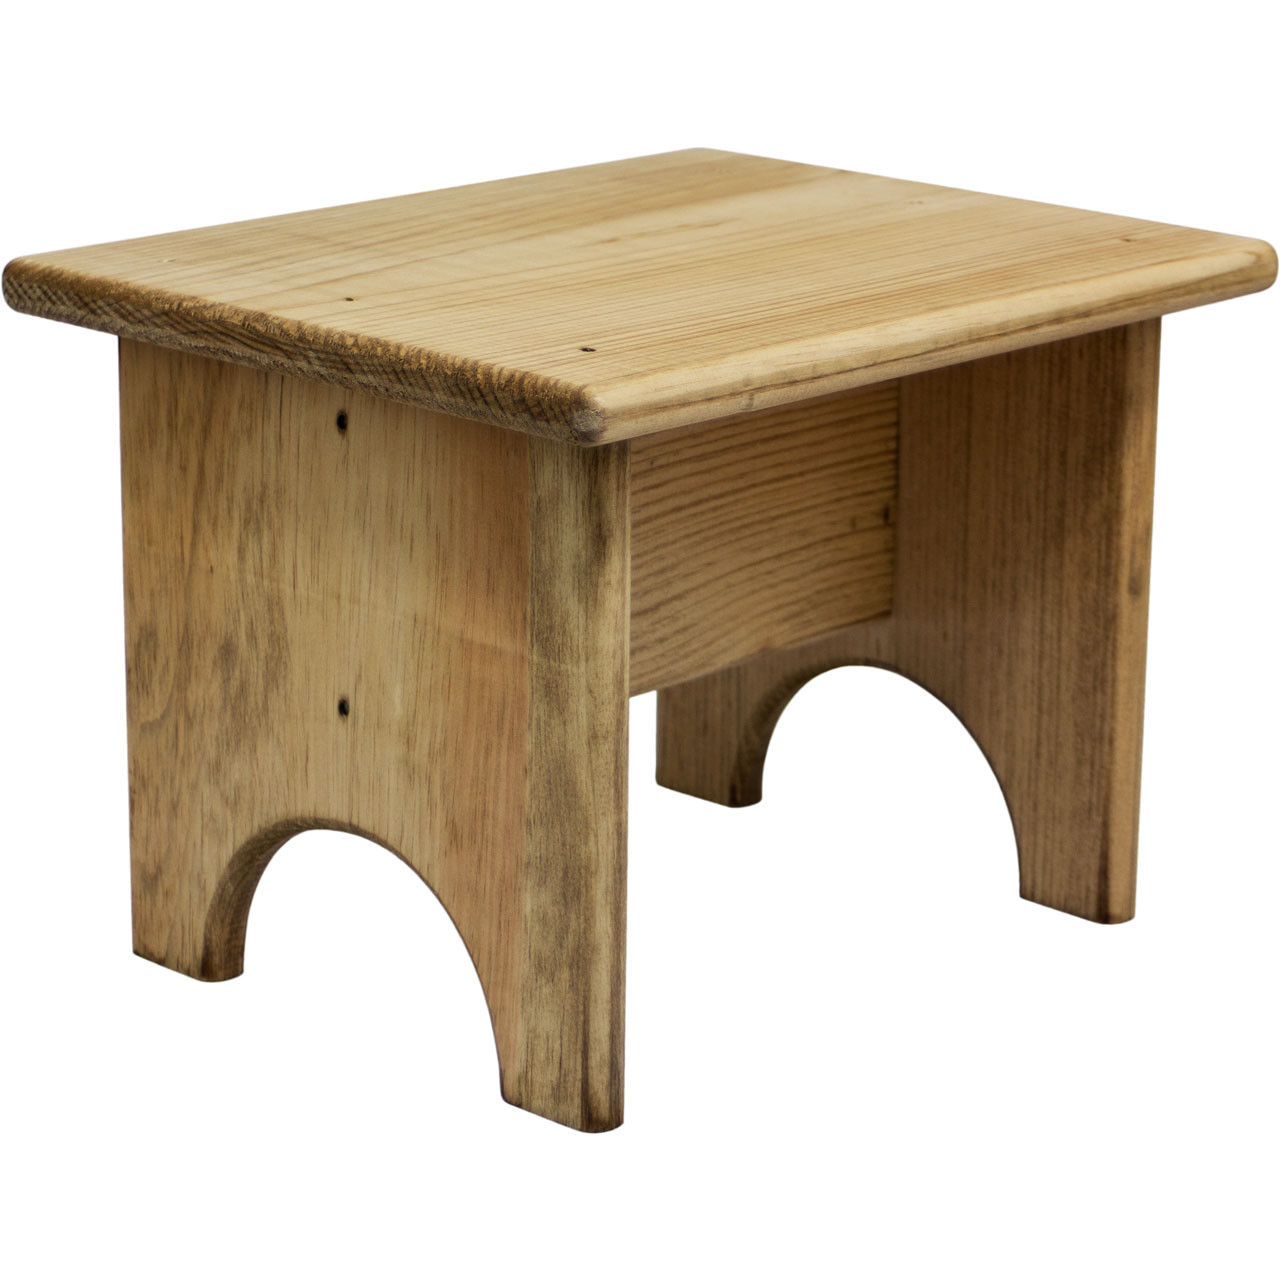 Unfinished Pine Kitchen Cabinets Small Wooden Footstool Unfinished Wood Footstool